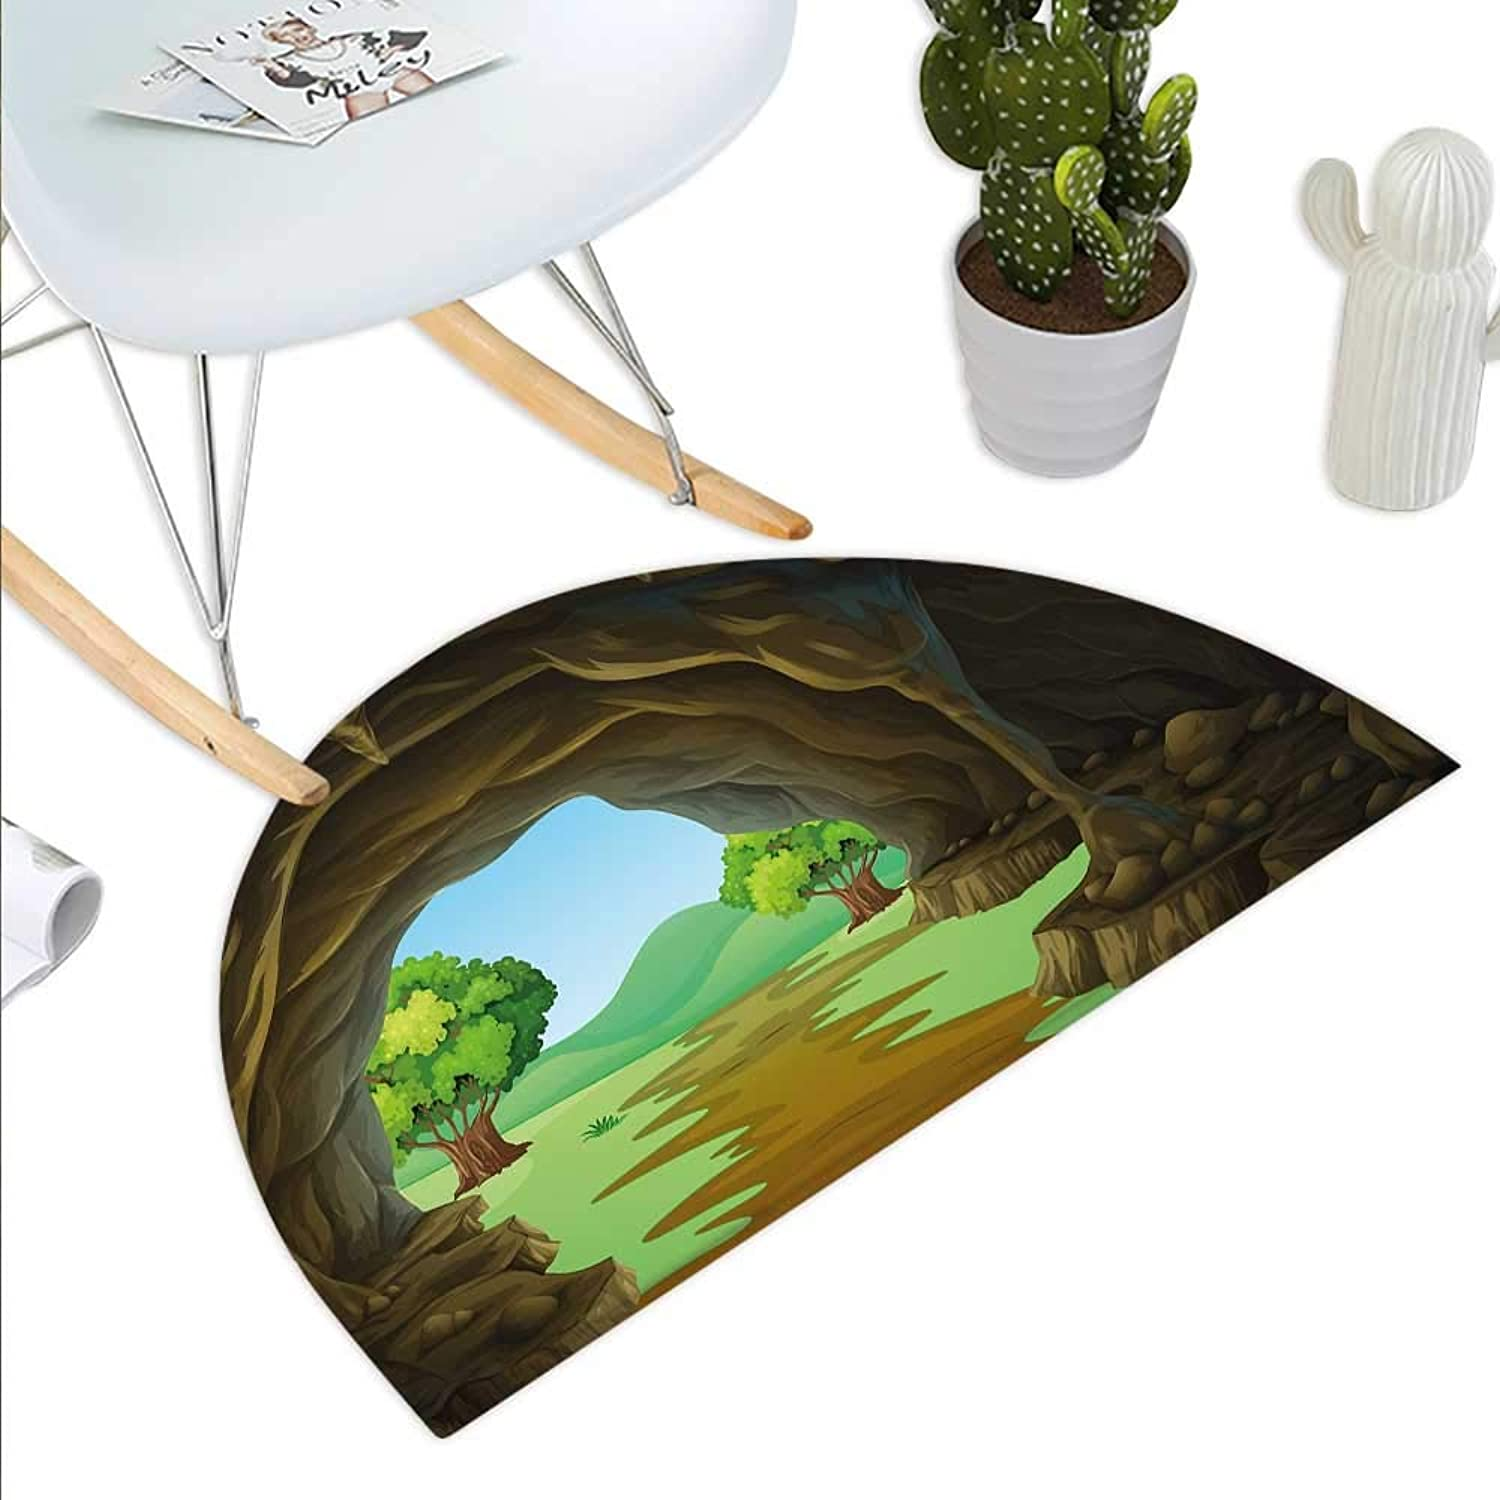 Cave Semicircle Doormat Rock Shelter in Countryside with Distant Hills Green Trees and Lawn Halfmoon doormats H 43.3  xD 64.9  Pale Brown Green Pale bluee